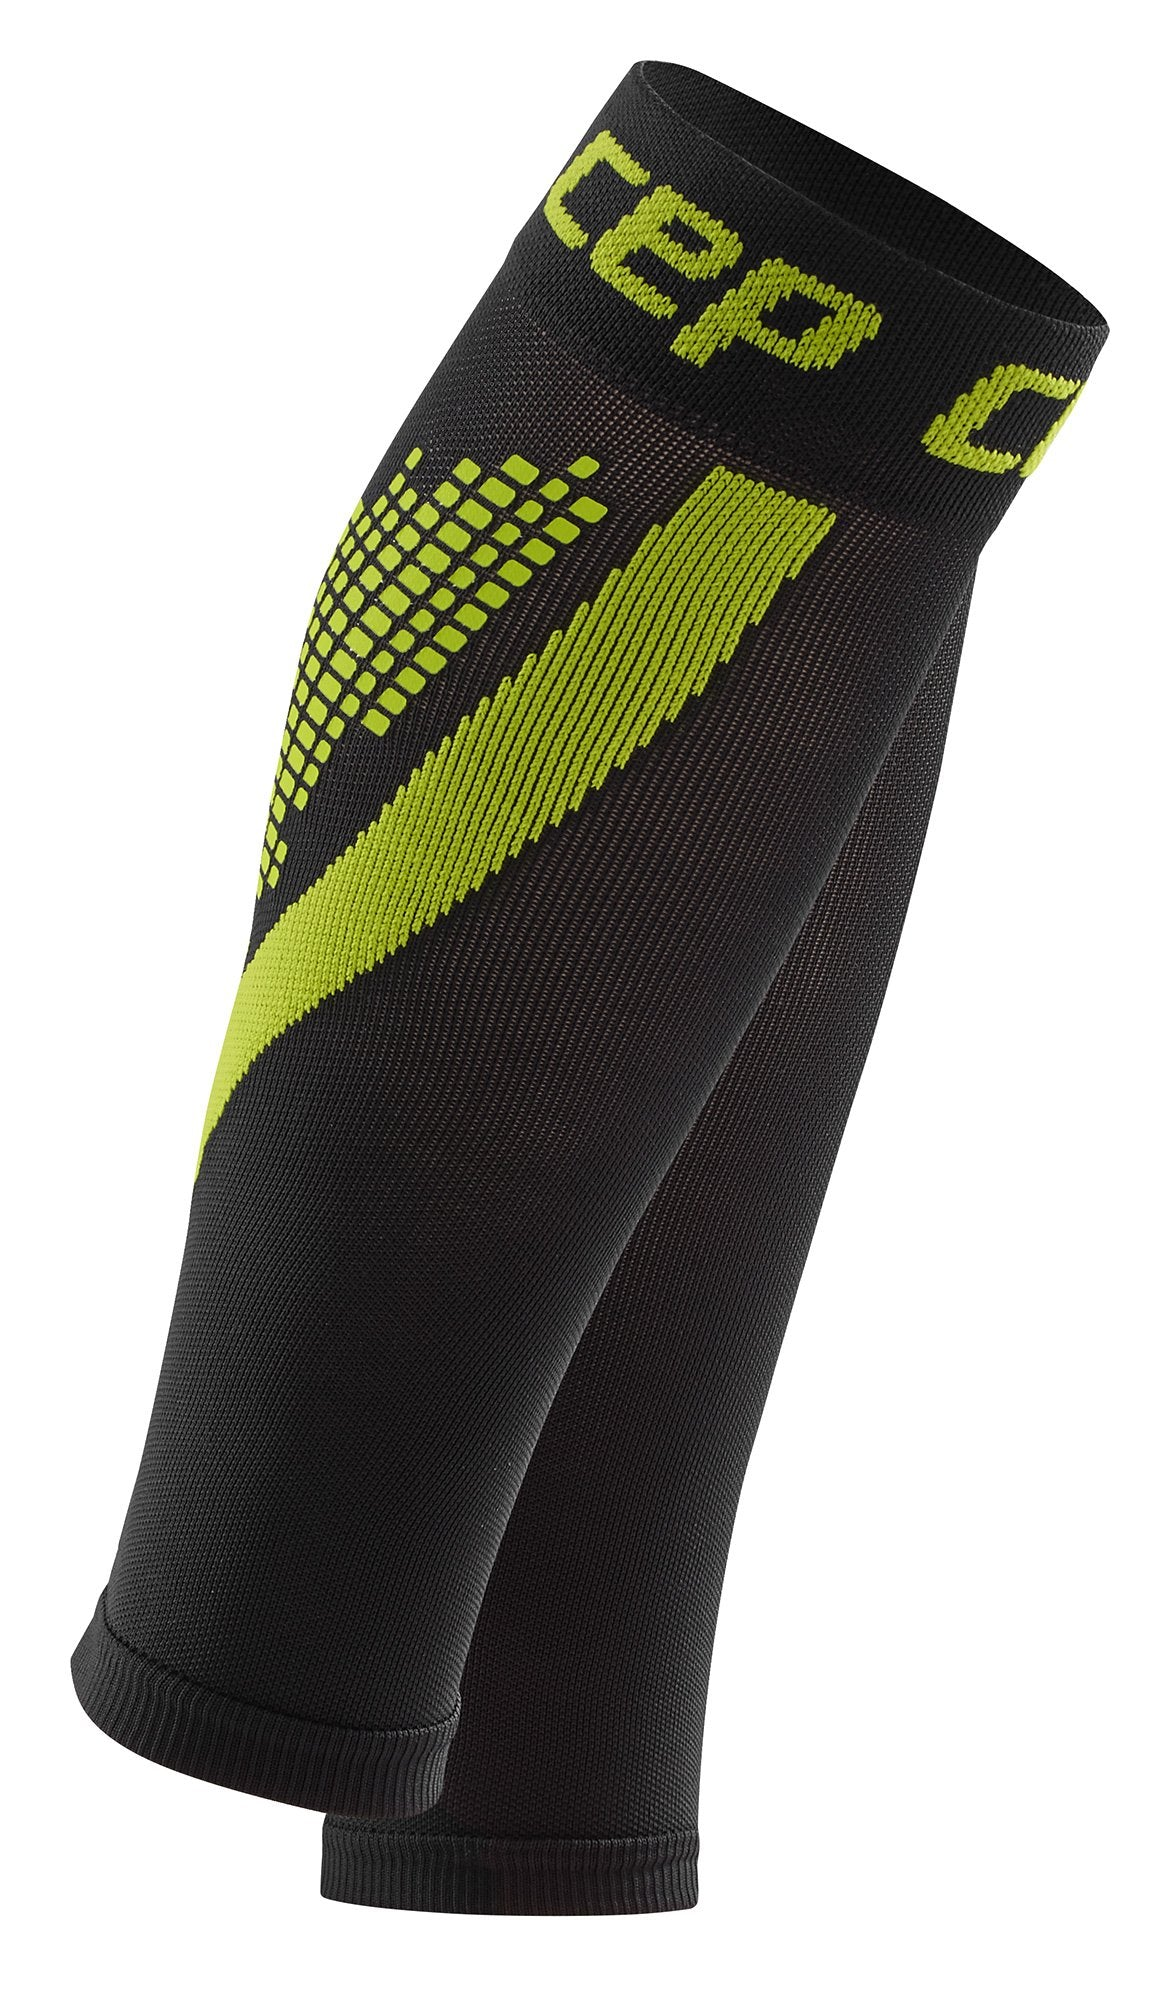 Nighttech Calf Sleeves, Women